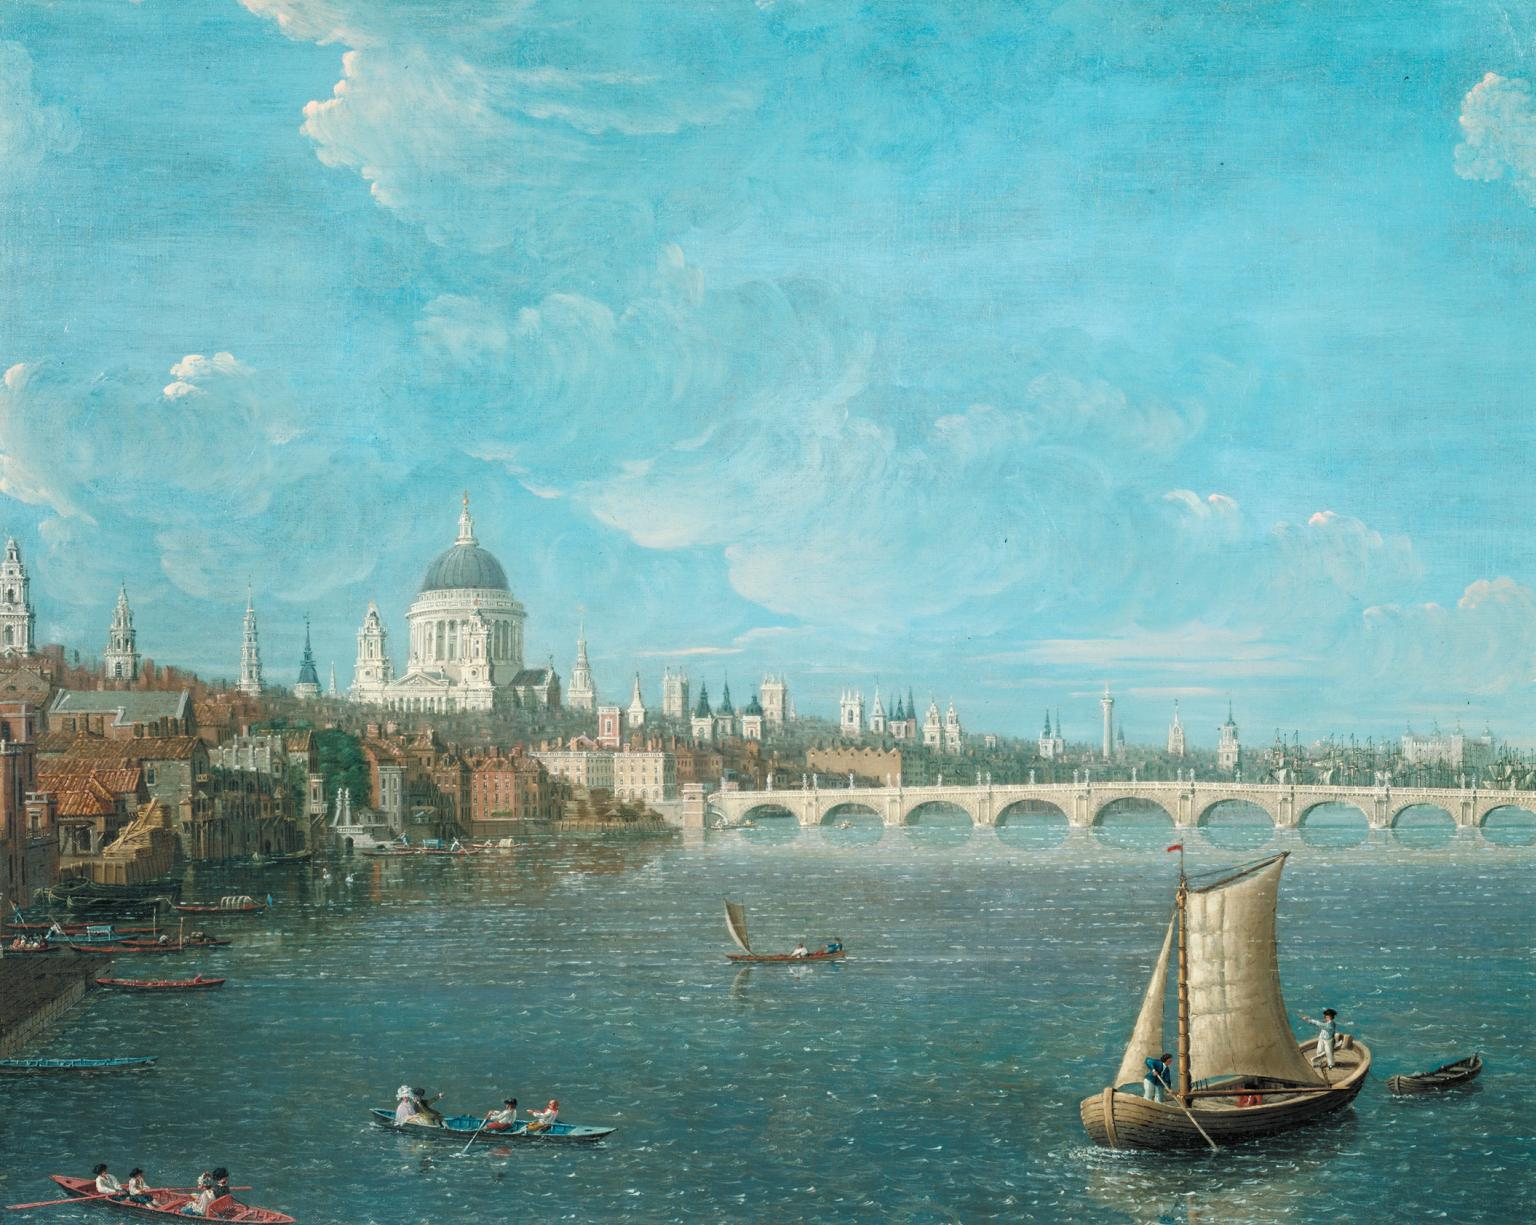 My London Walks: View of St Paul's from the Thames, Daniel Turner, c.1790, Photo © Tate (CC BY-NC-ND 3.0)